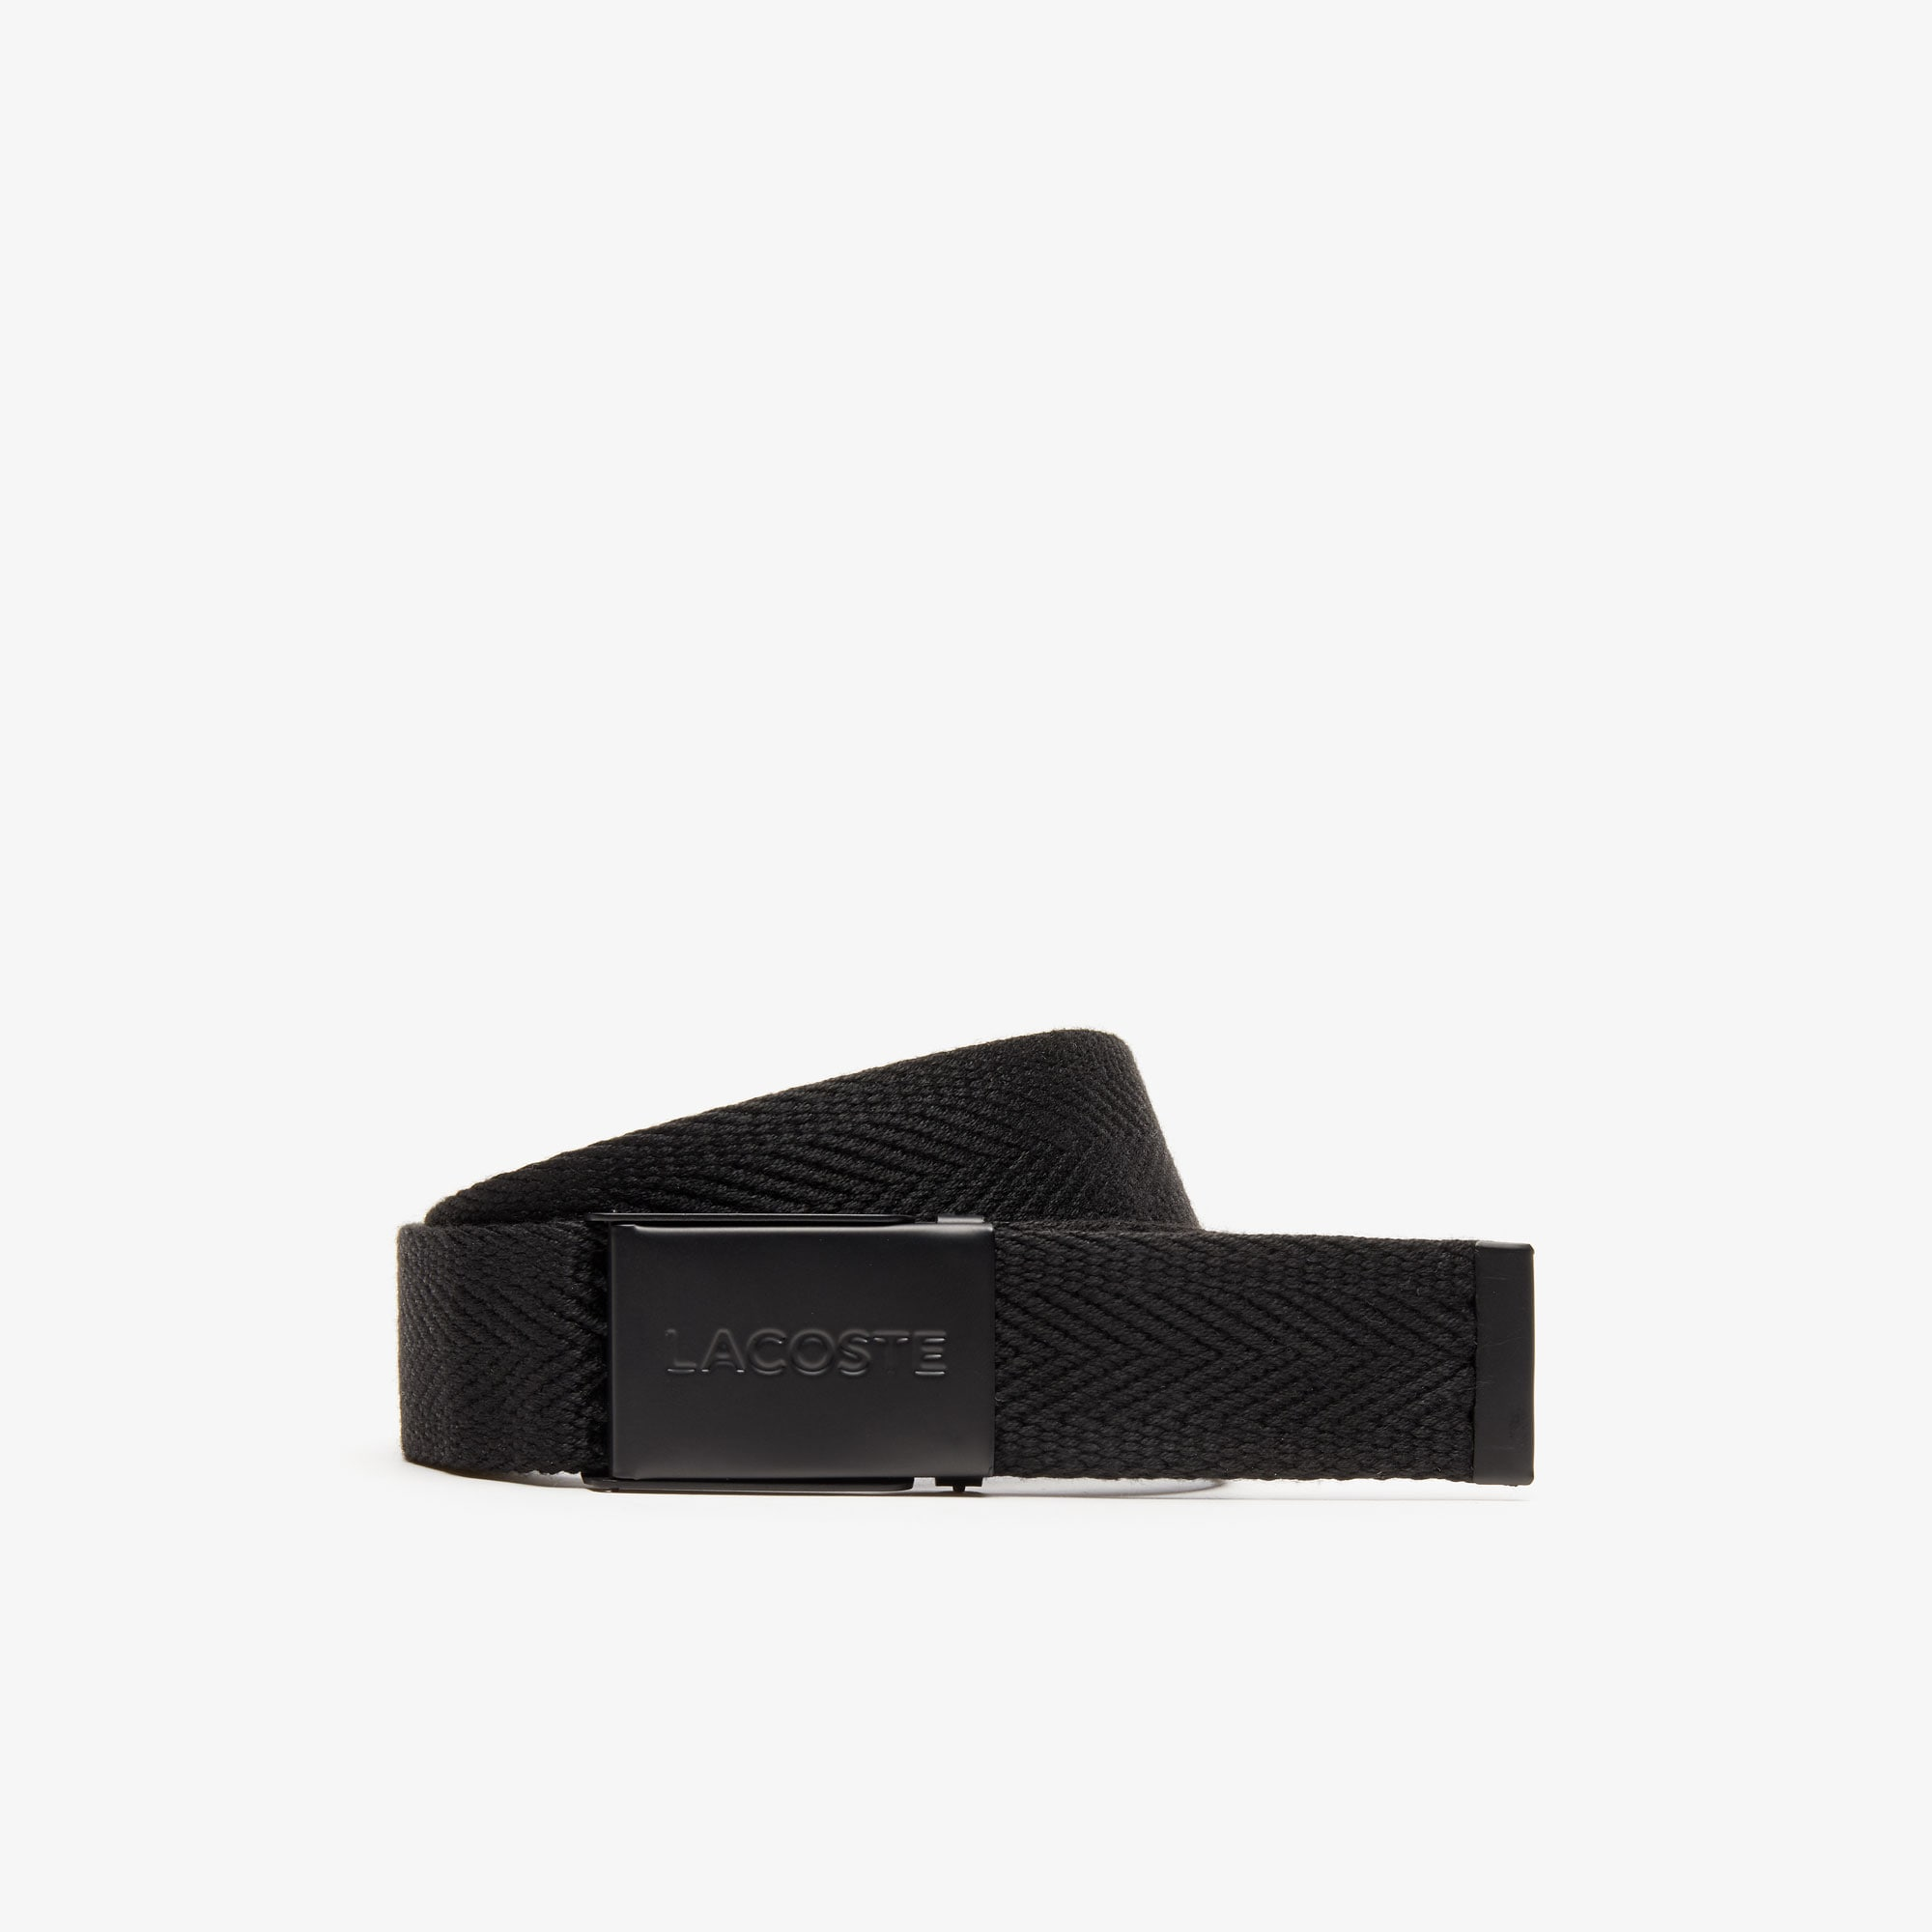 Men's Lacoste Engraved Plate Buckle Woven Belt